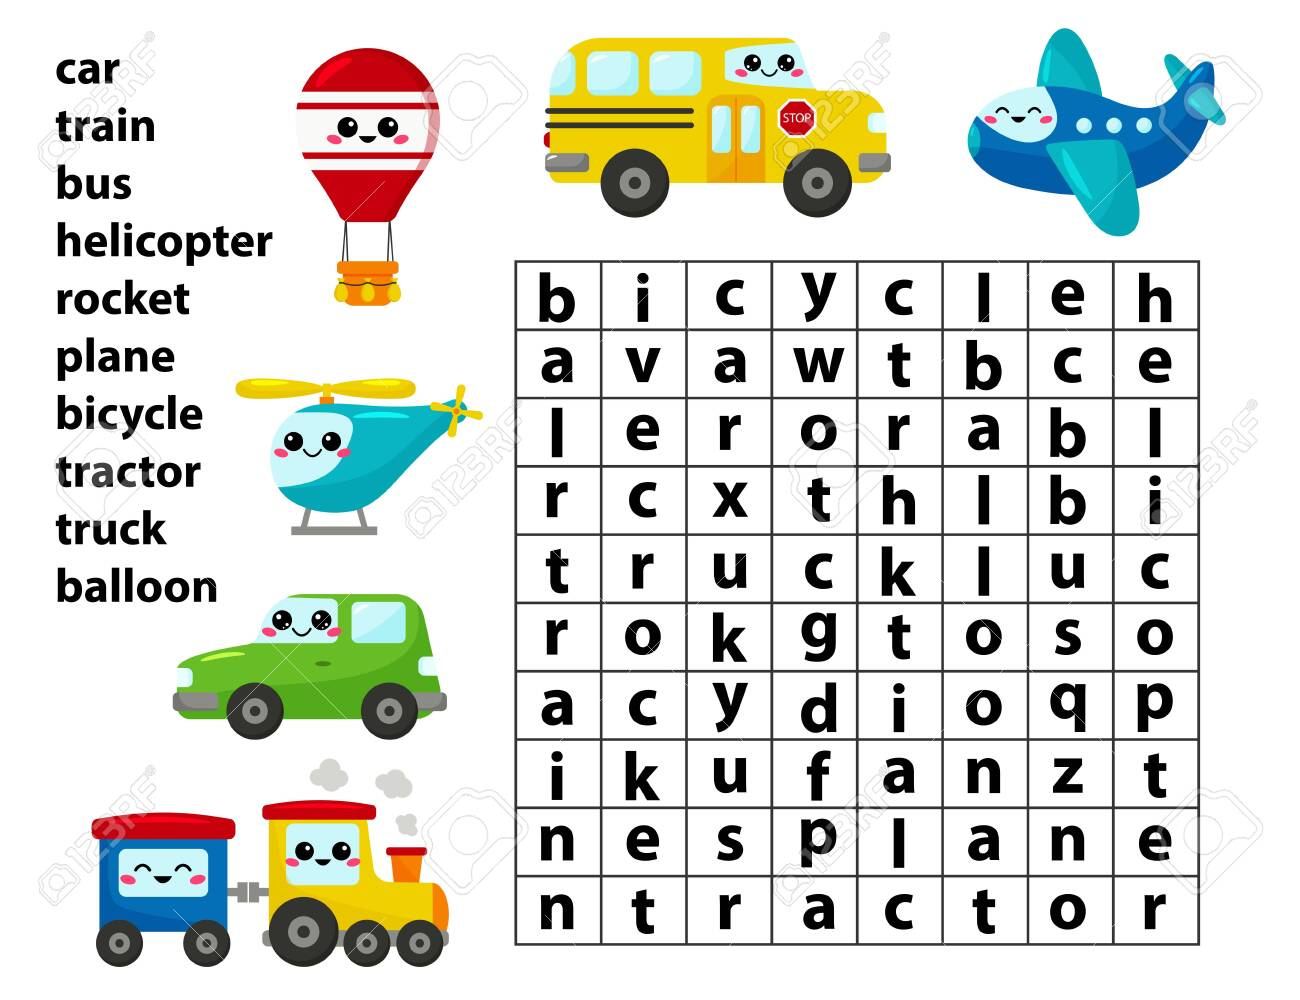 Word Search Game Learn English Words For Preschool Kids Activity Royalty Free Cliparts Vectors And Stock Illustration Image 122825304